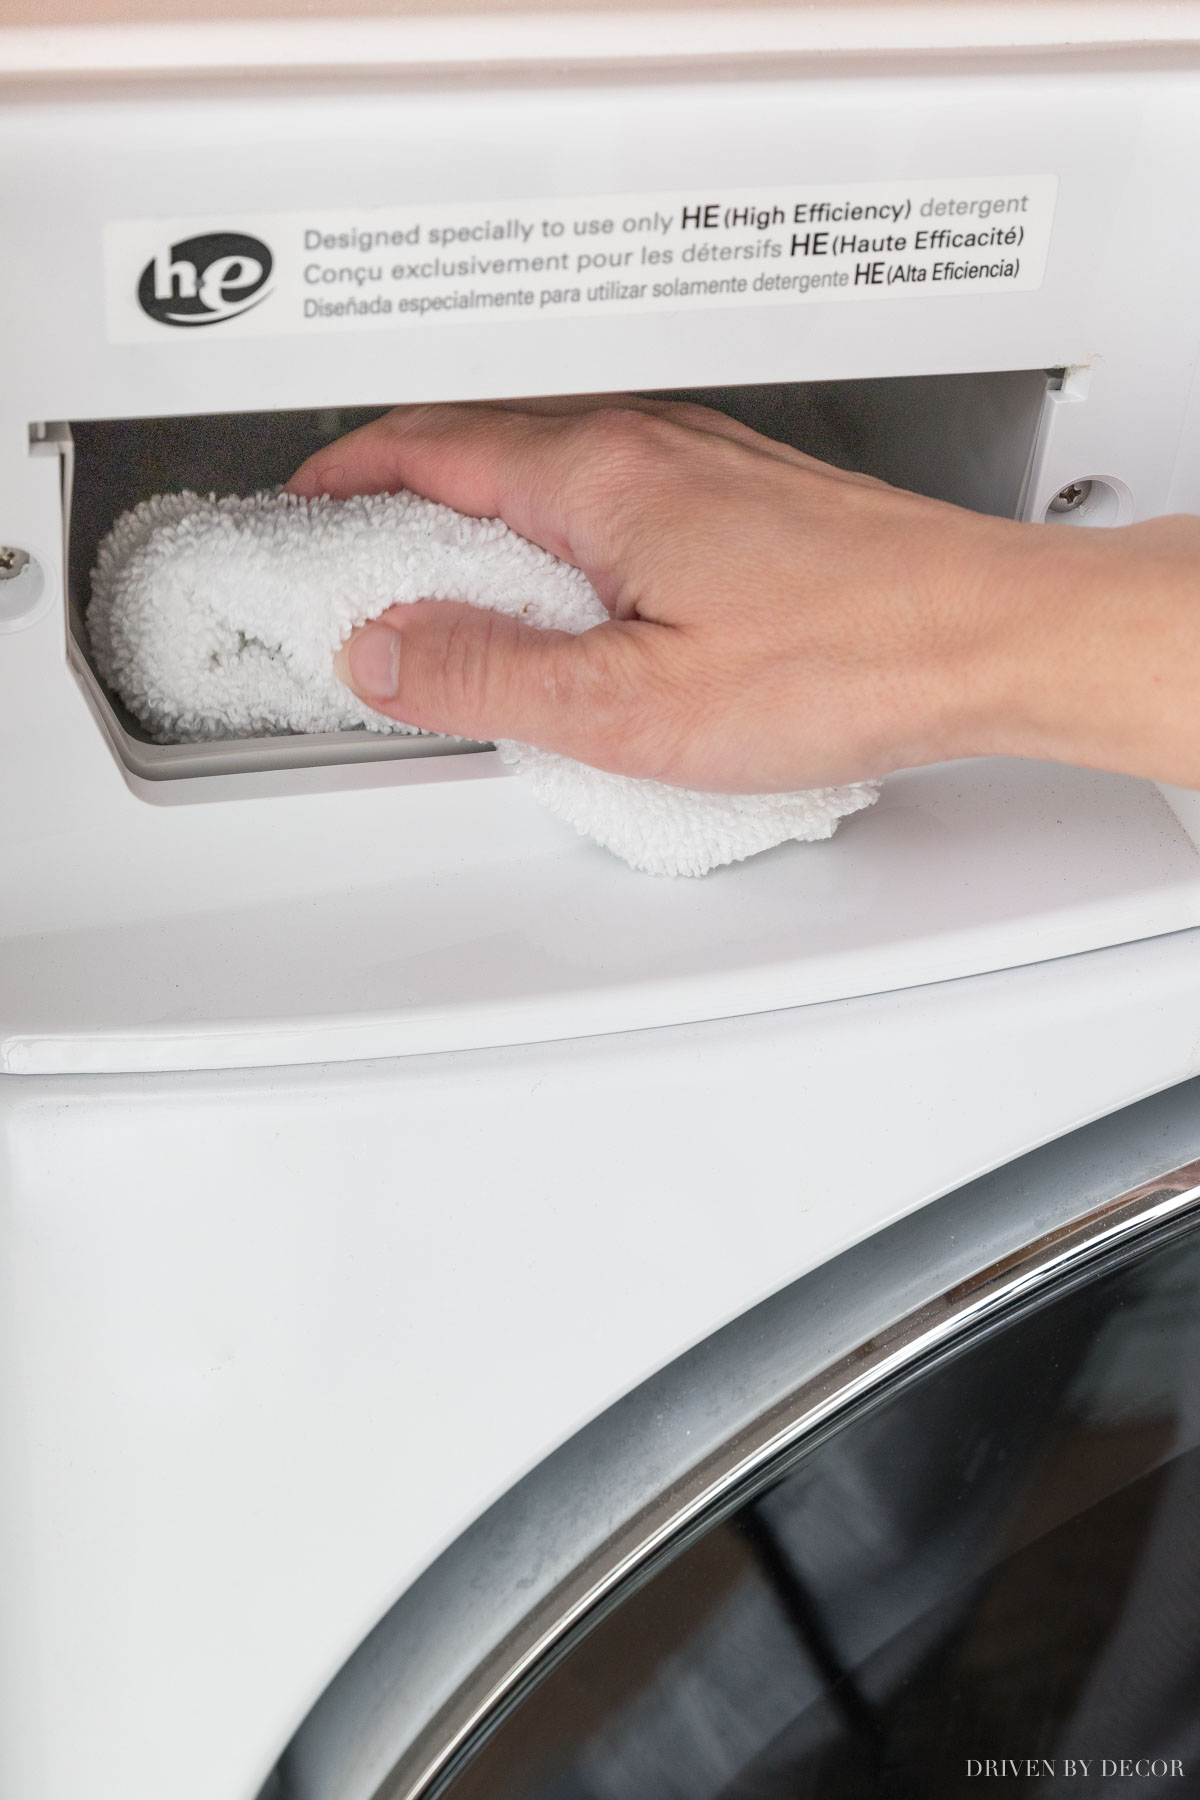 Tips on how to clean your washing machine!